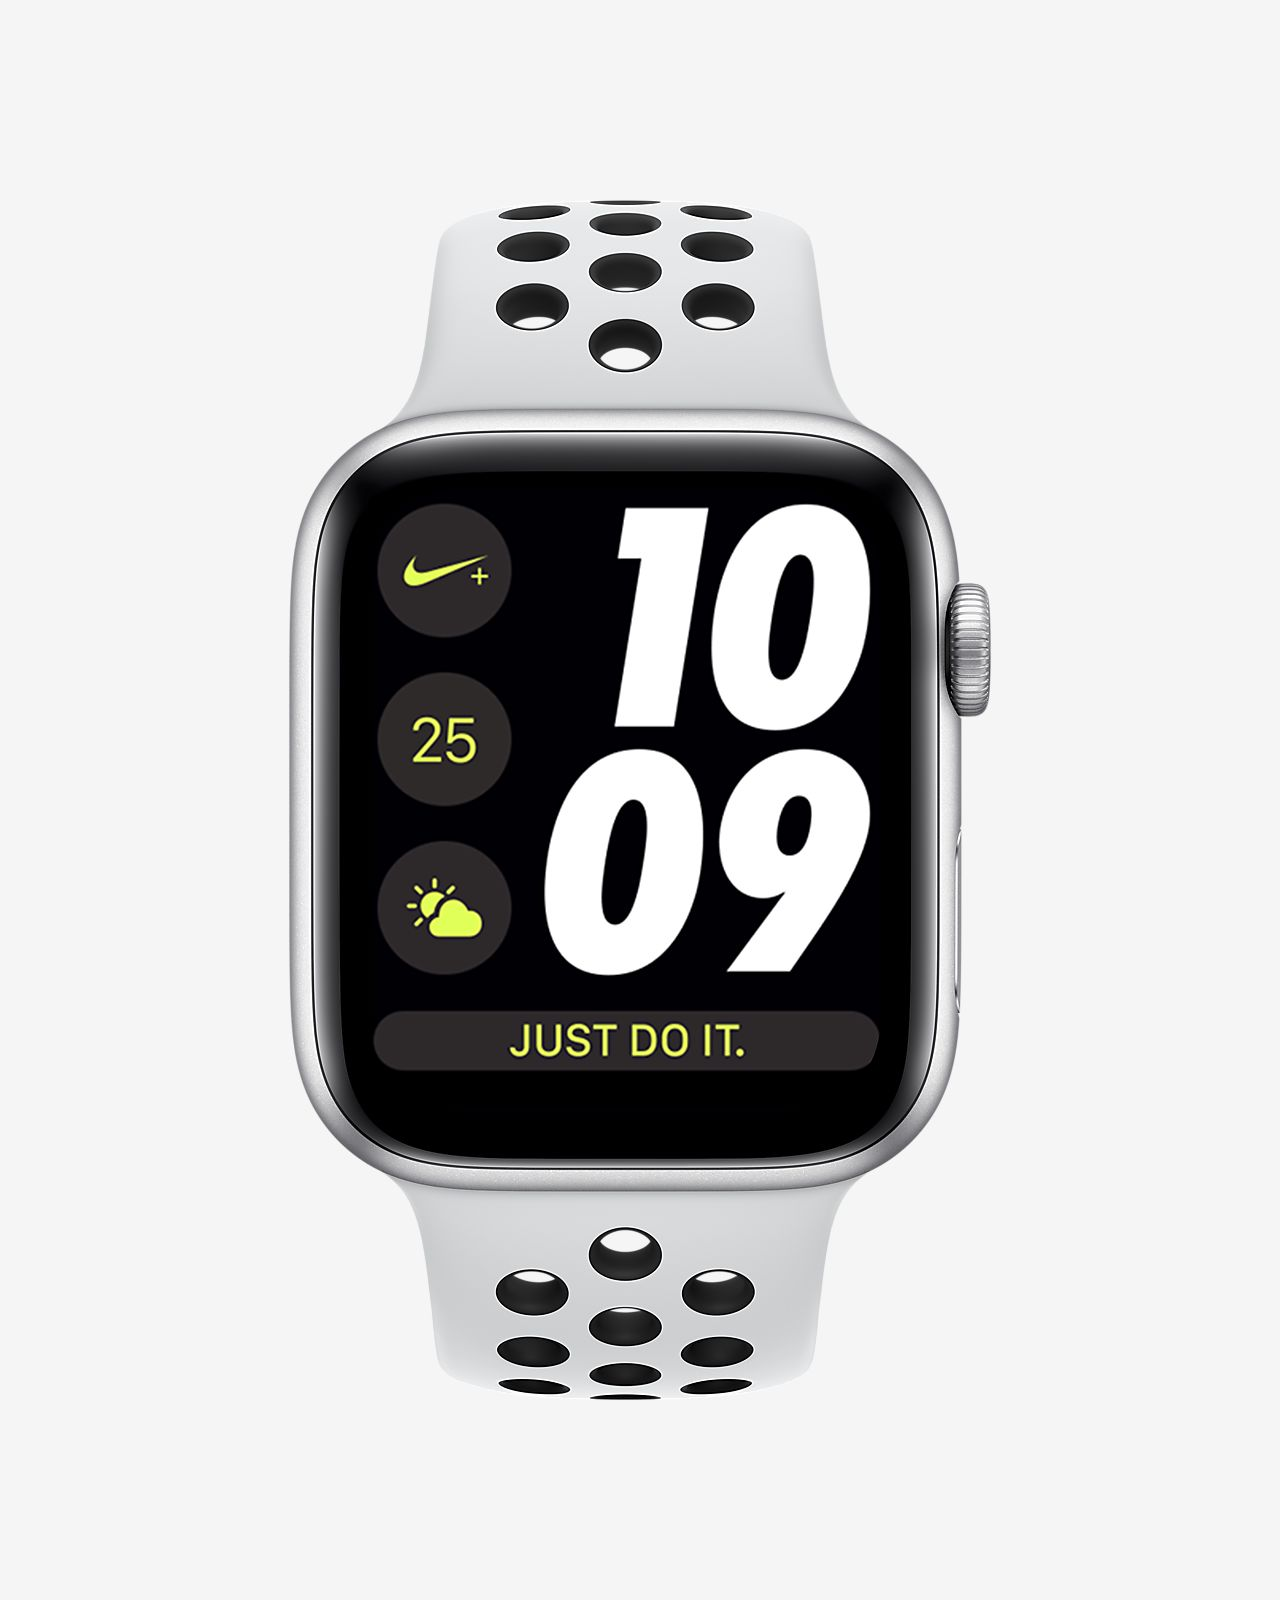 22d384e19 ... Apple Watch Nike+ Series 4 (GPS) with Nike Sport Band 44mm Sport Watch